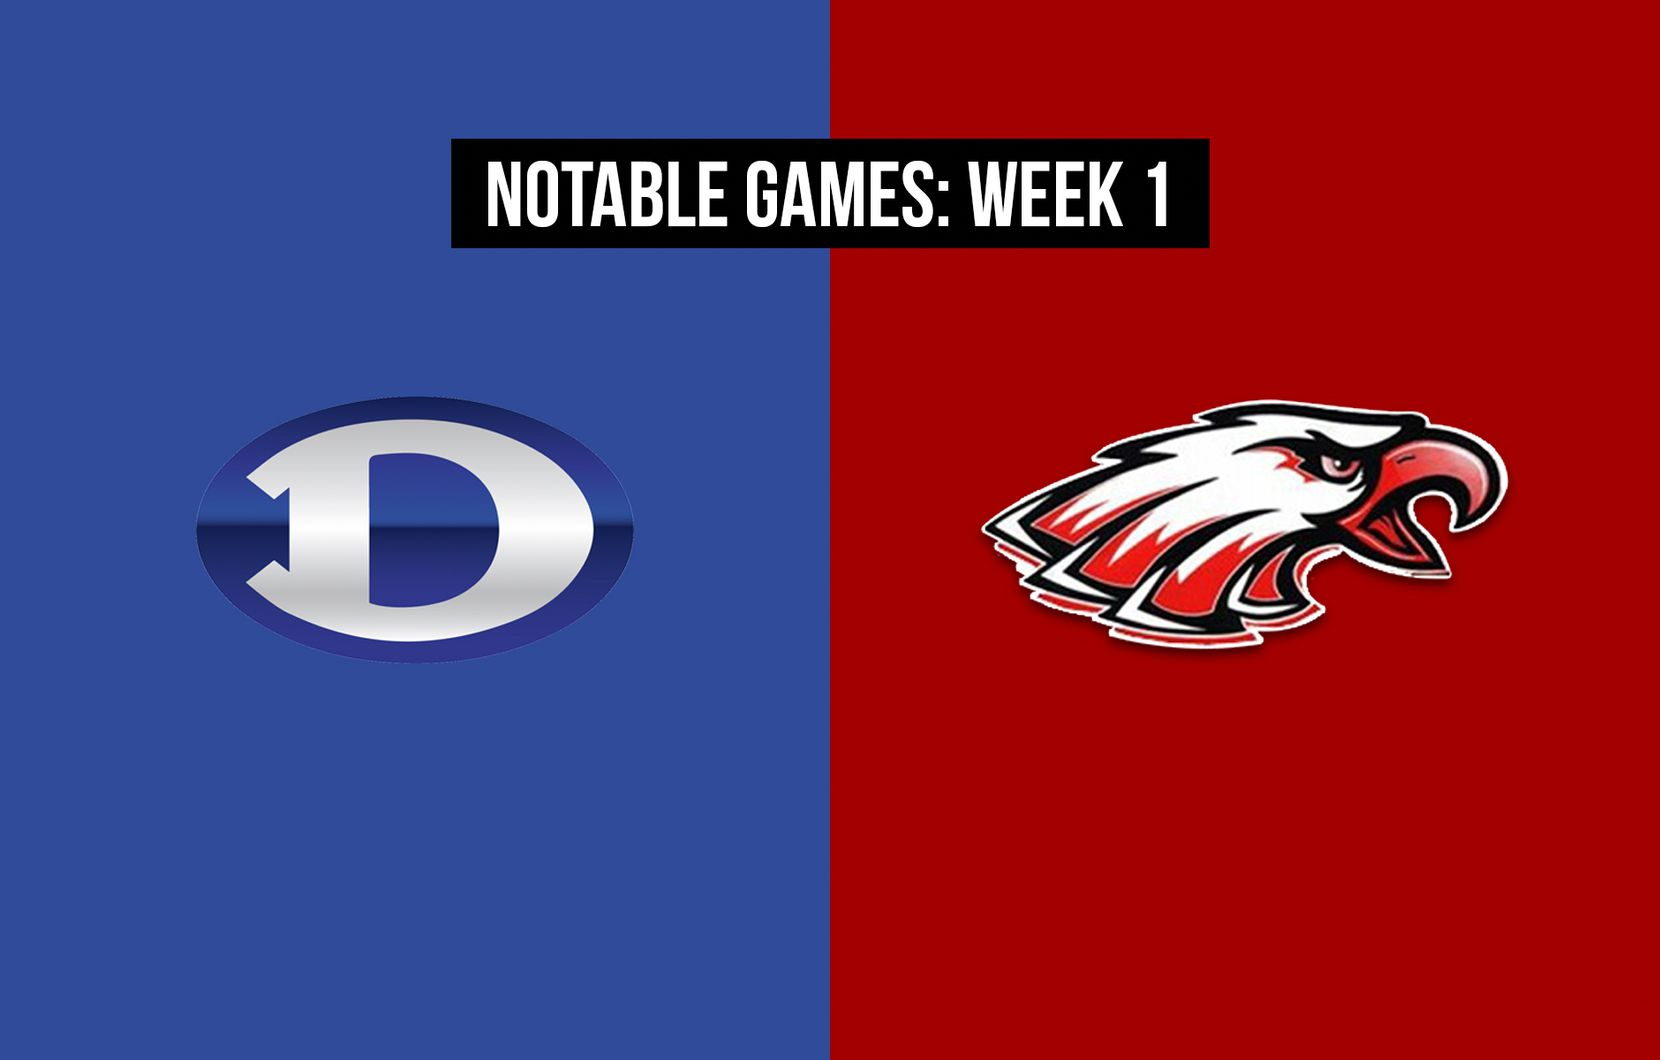 Notable games, Week 1 of the 2020 season: Decatur vs. Argyle.